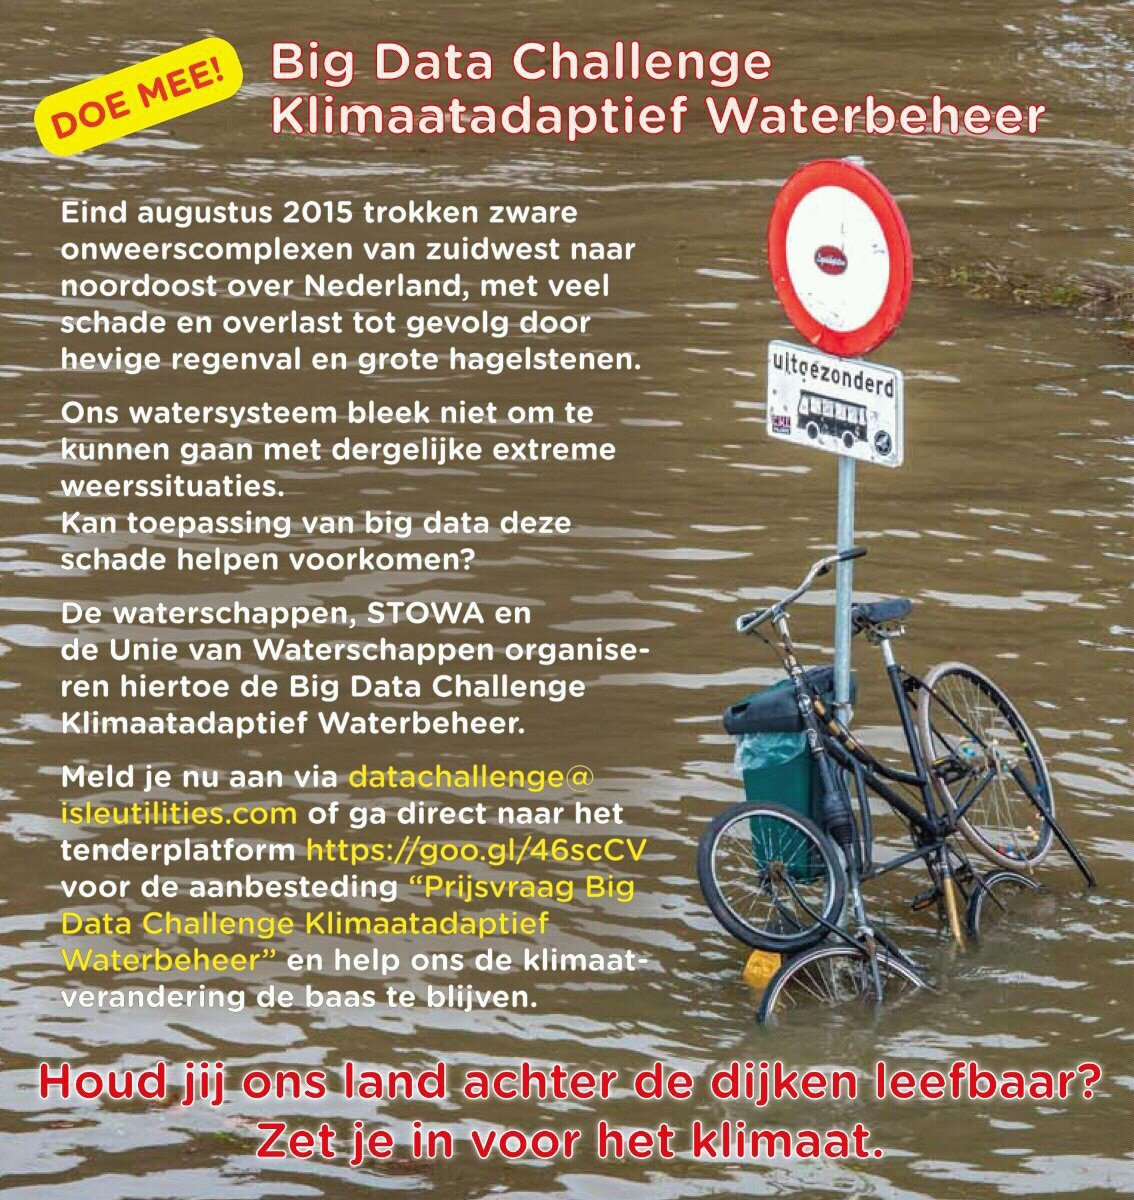 Big Data Challenge Klimaatadaptief Waterbeheer van start